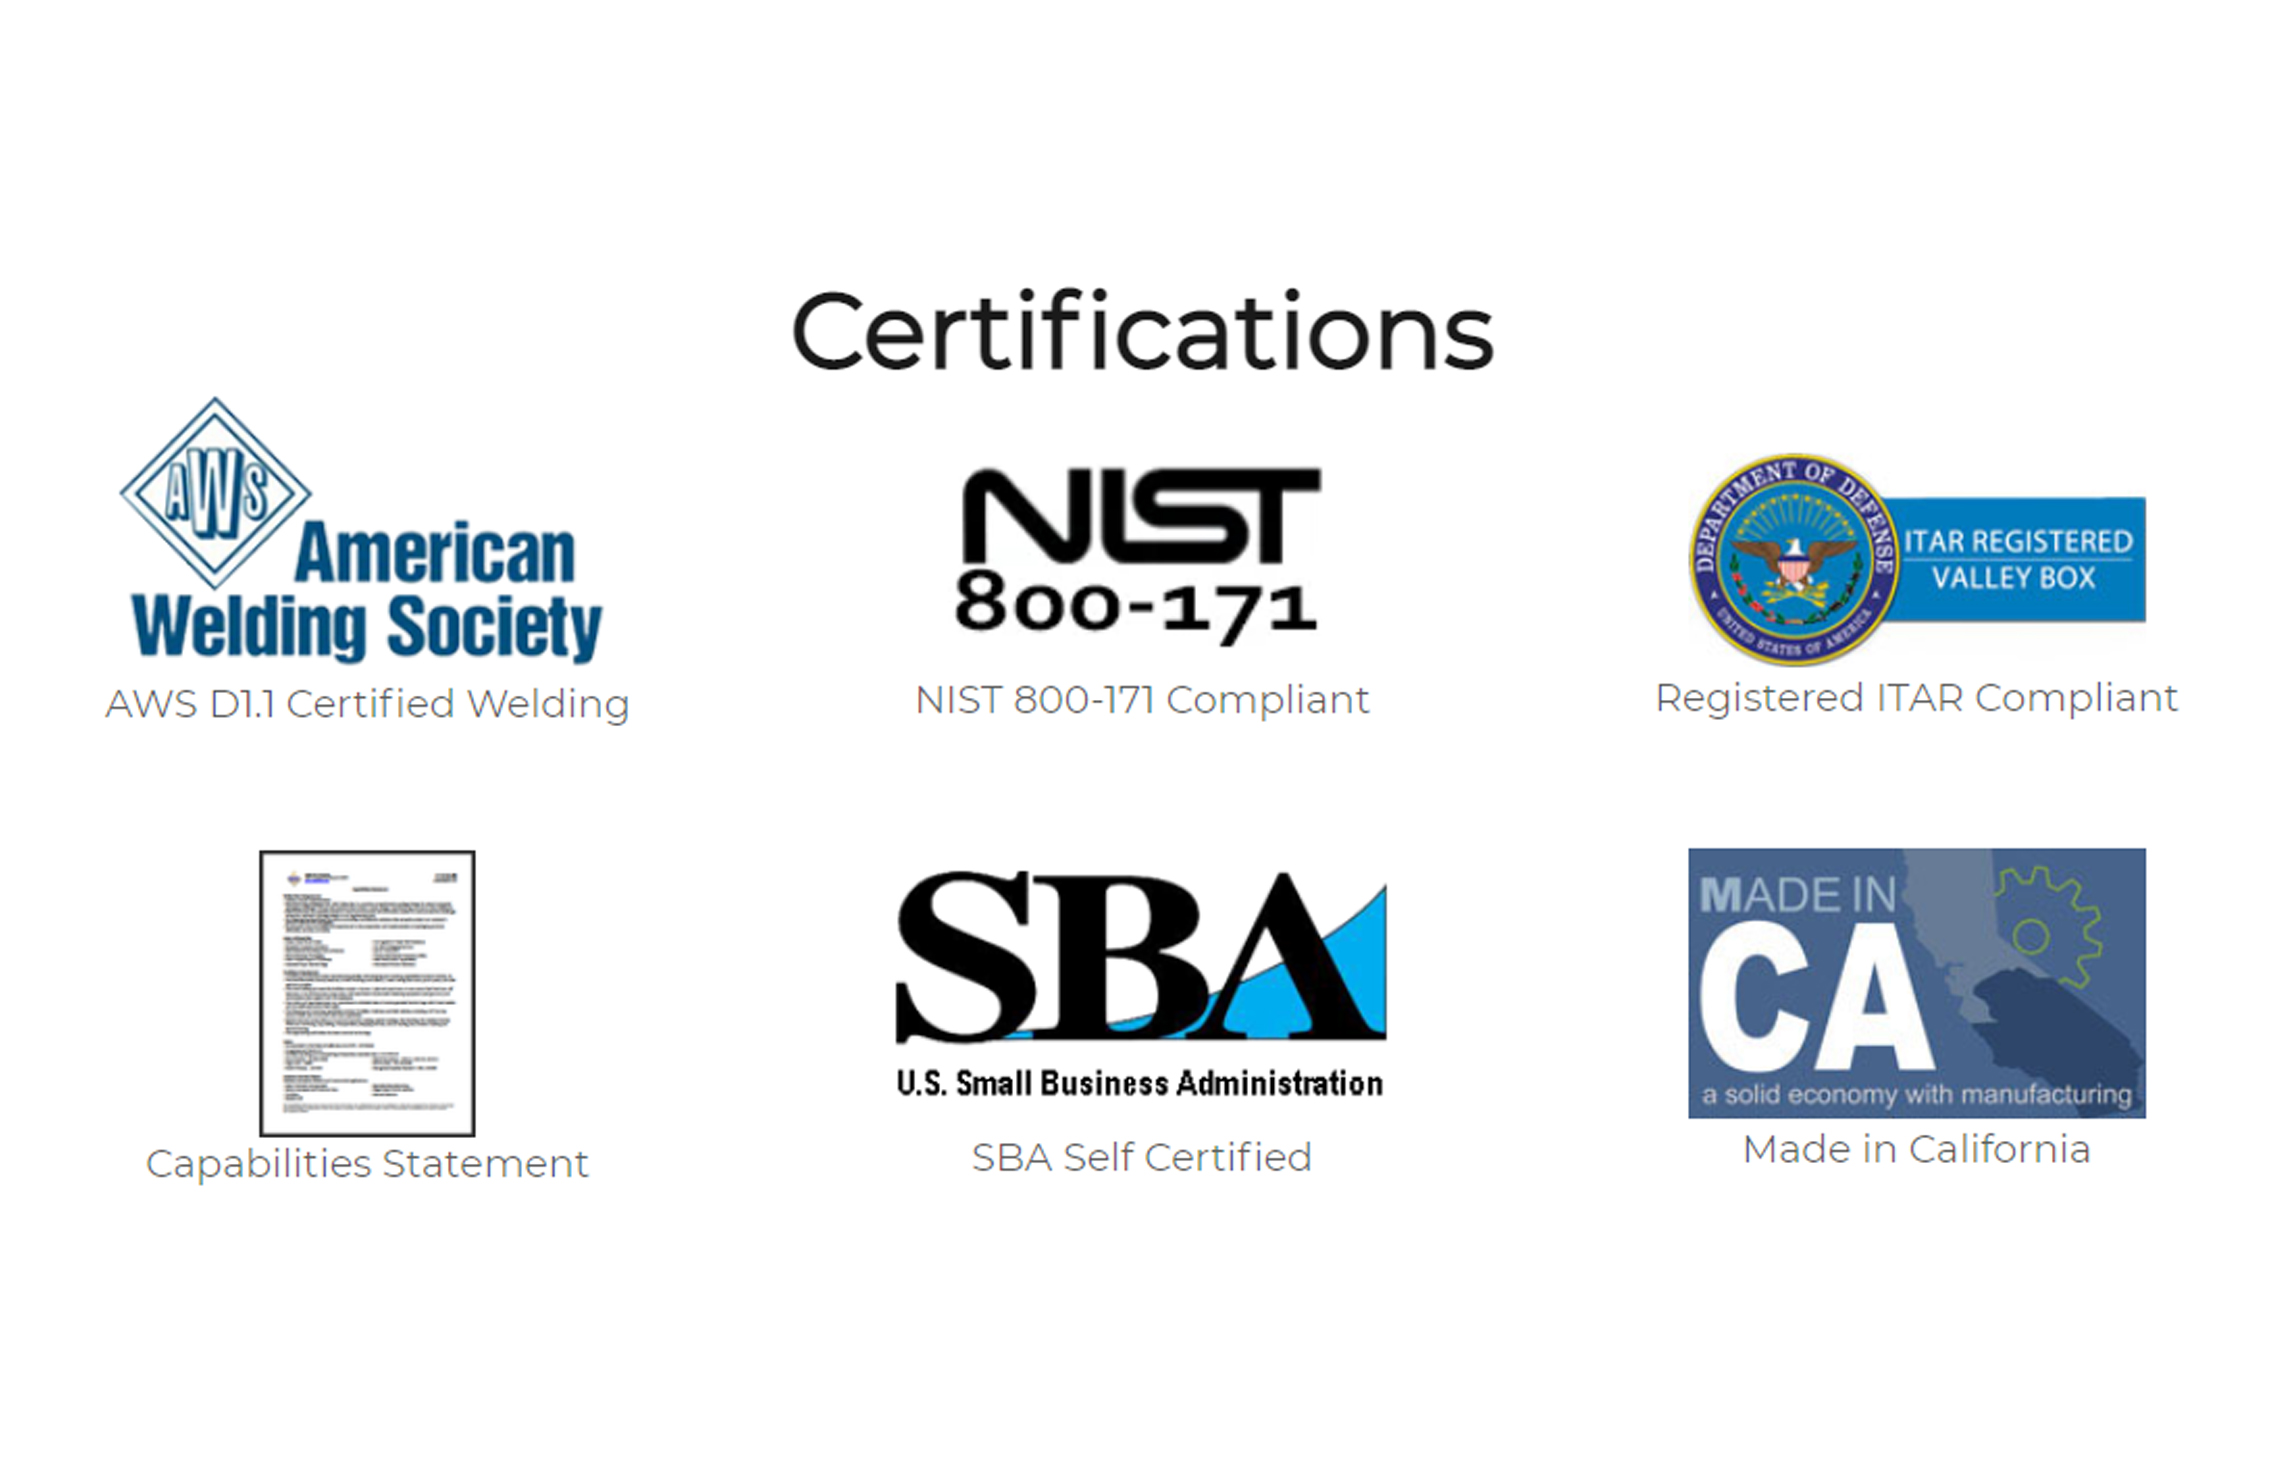 crate manufacturers certifications